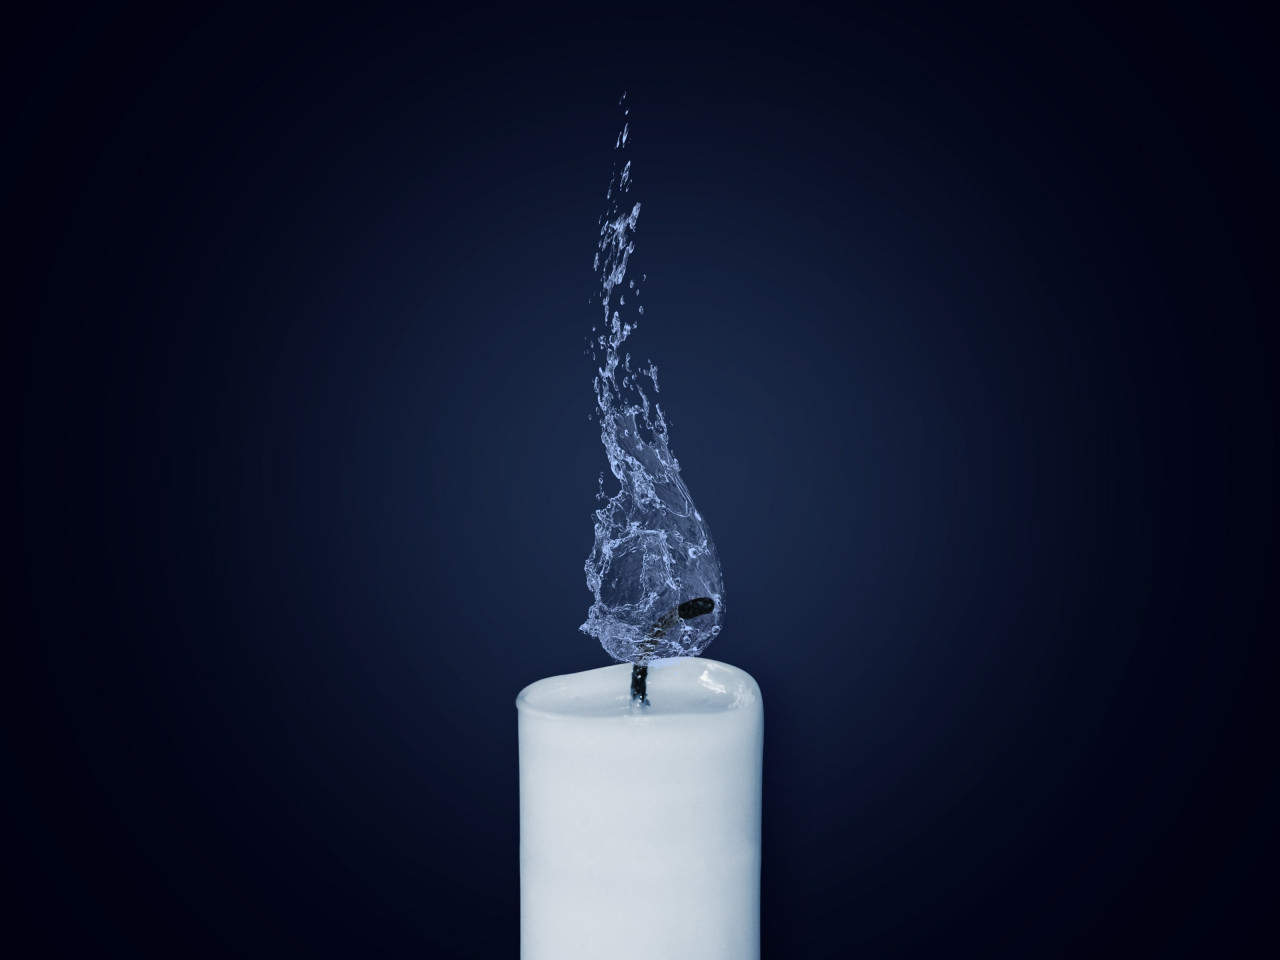 Water Flame. Candlelight | 1280x960 wallpaper